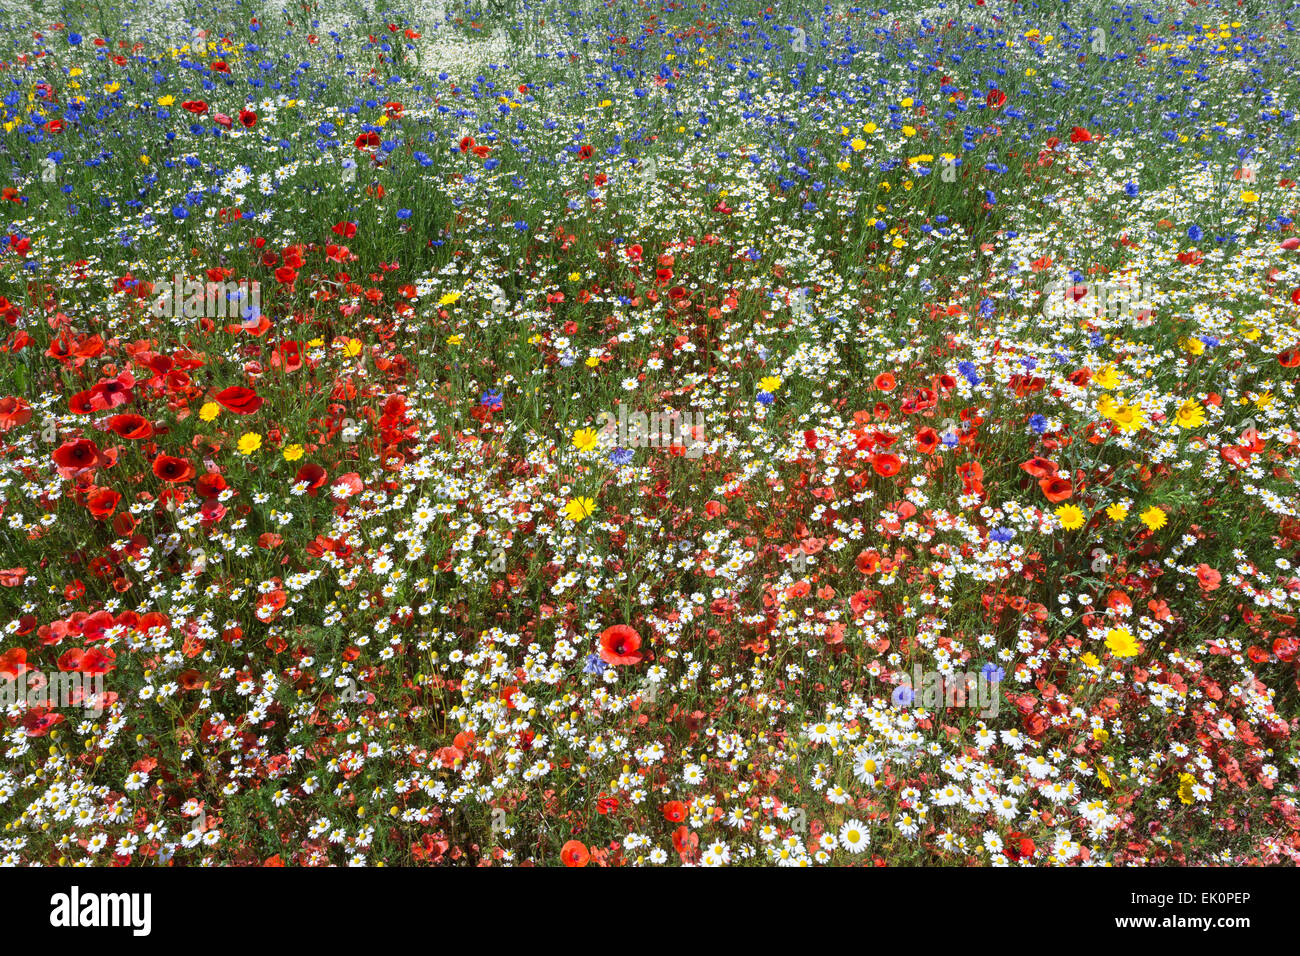 Wildflowers, including poppies (Papaver rhoeas), being grown for seed by Landlife, Fir Tree Farm, Merseyside - Stock Image